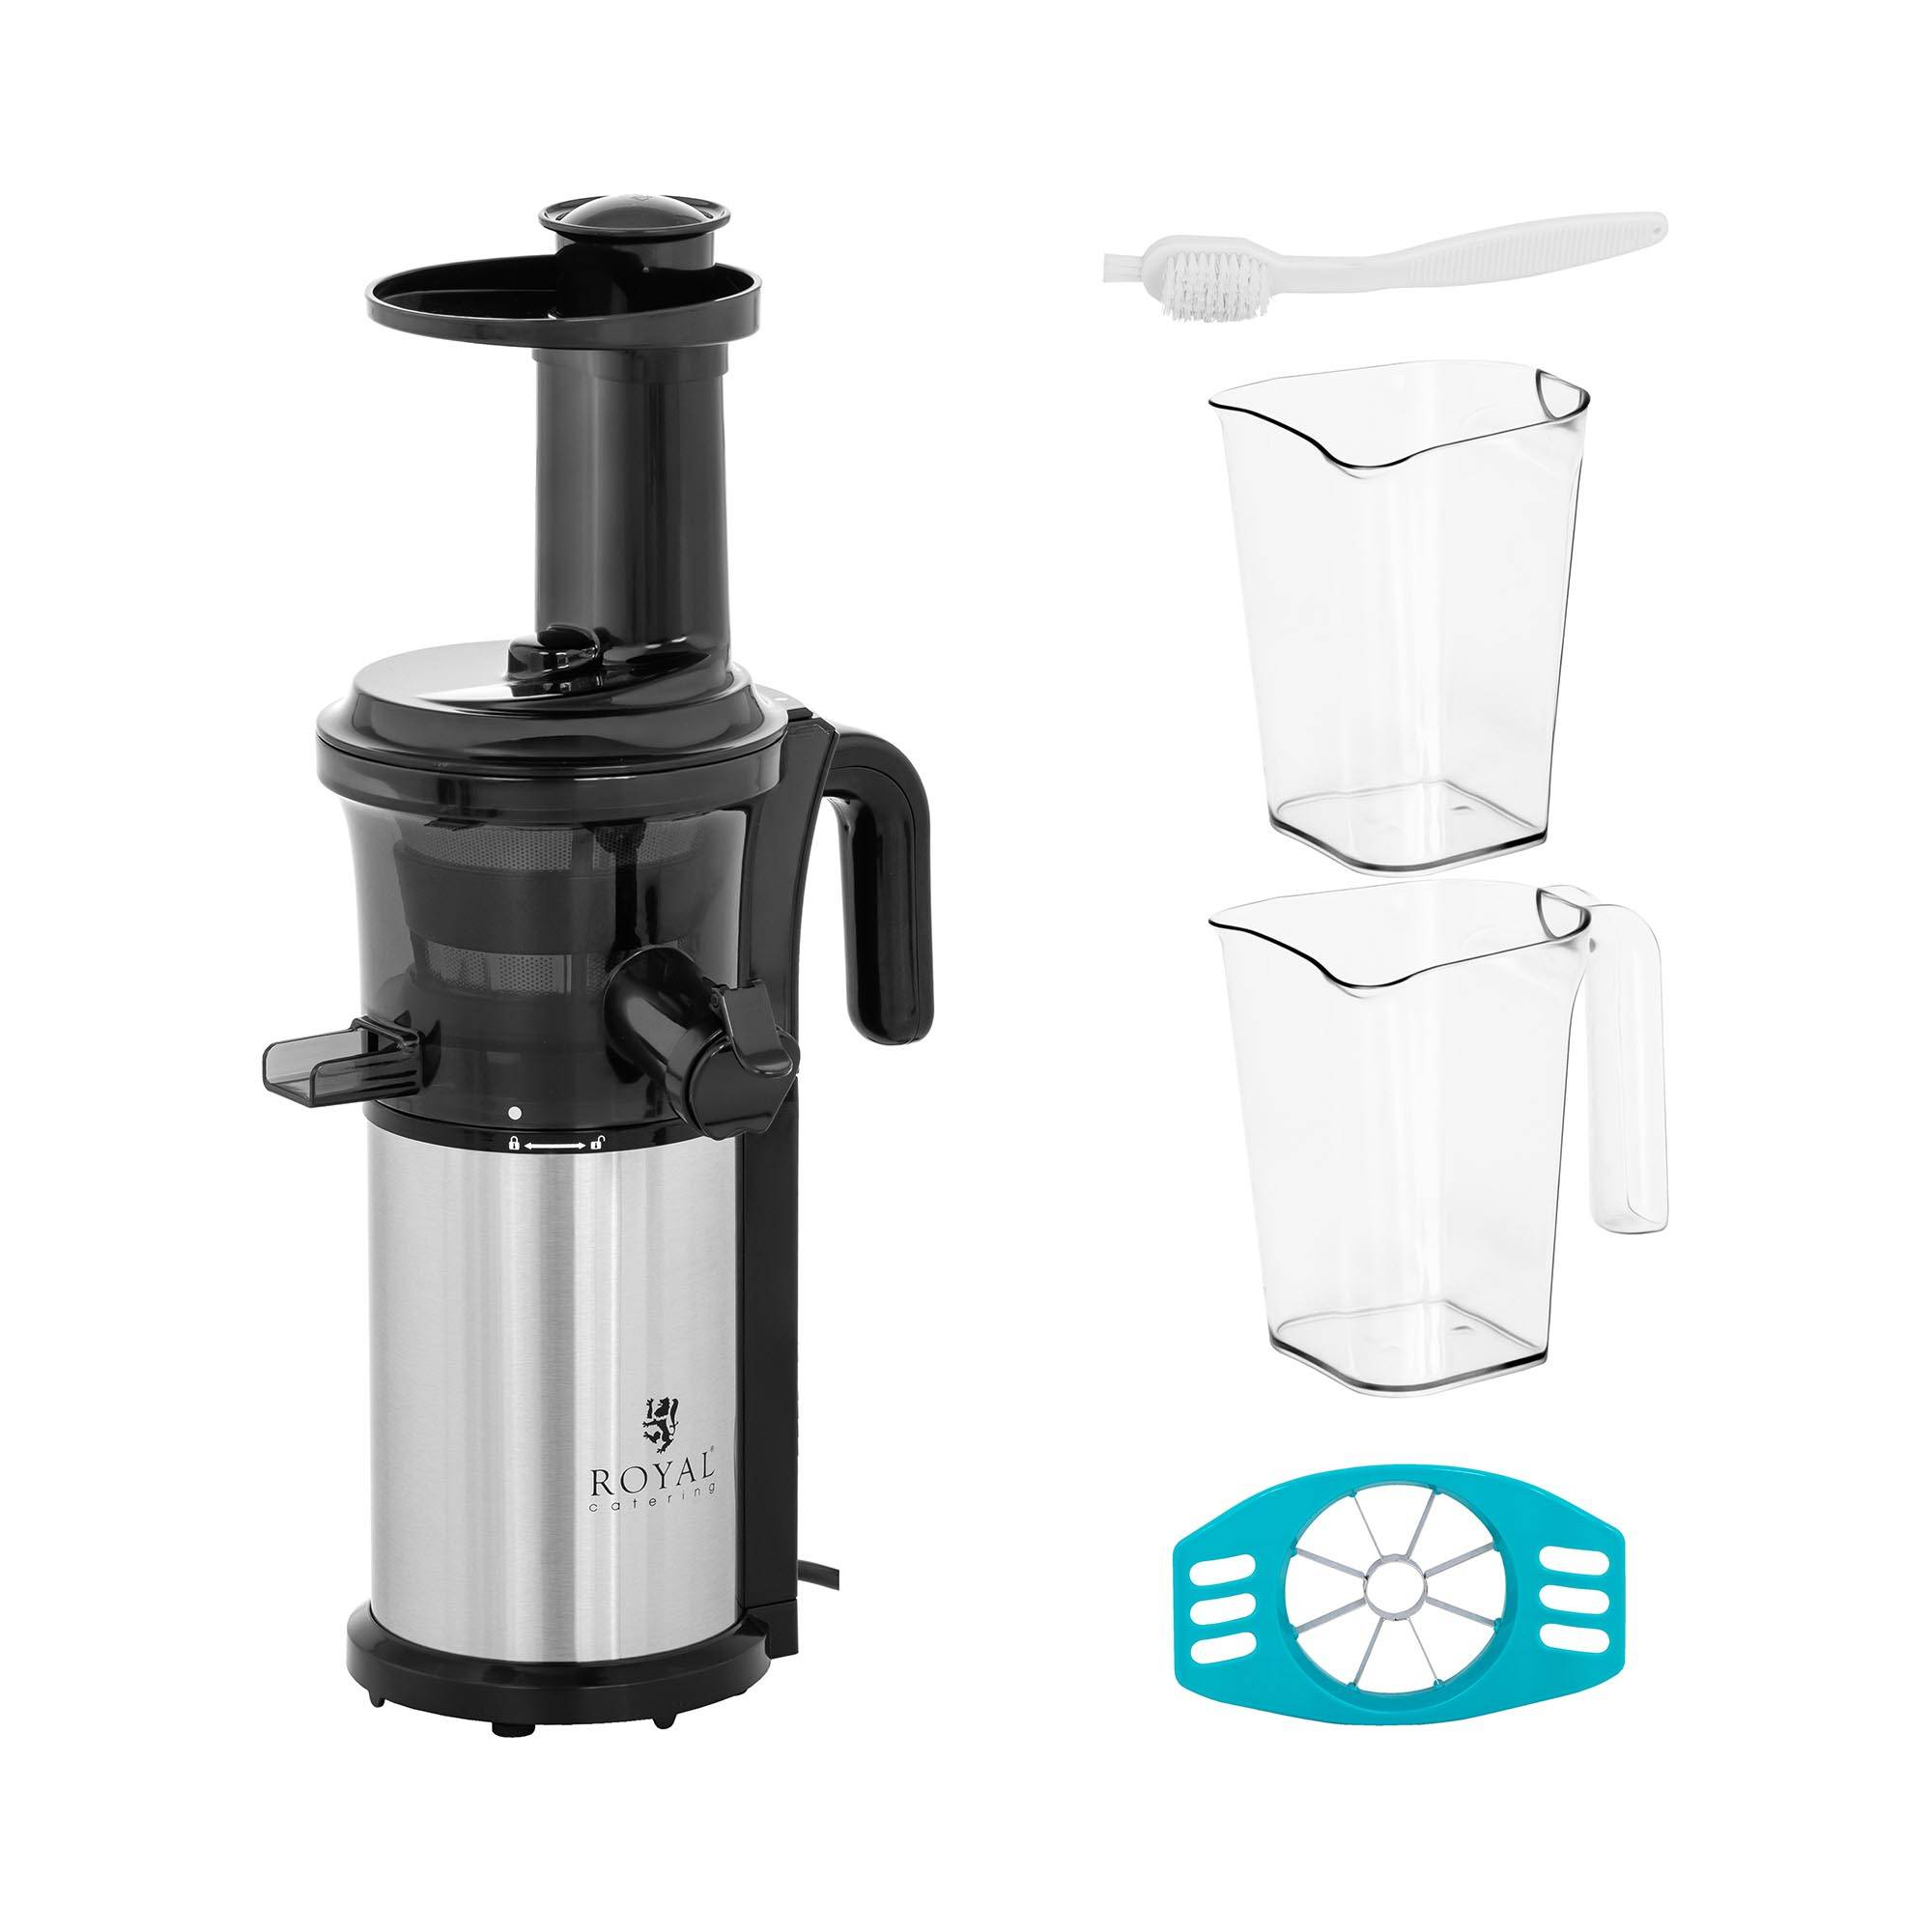 Royal Catering Extracteur jus - Slow Juicer - 200 W - 35 tr/min RCSJ-200W